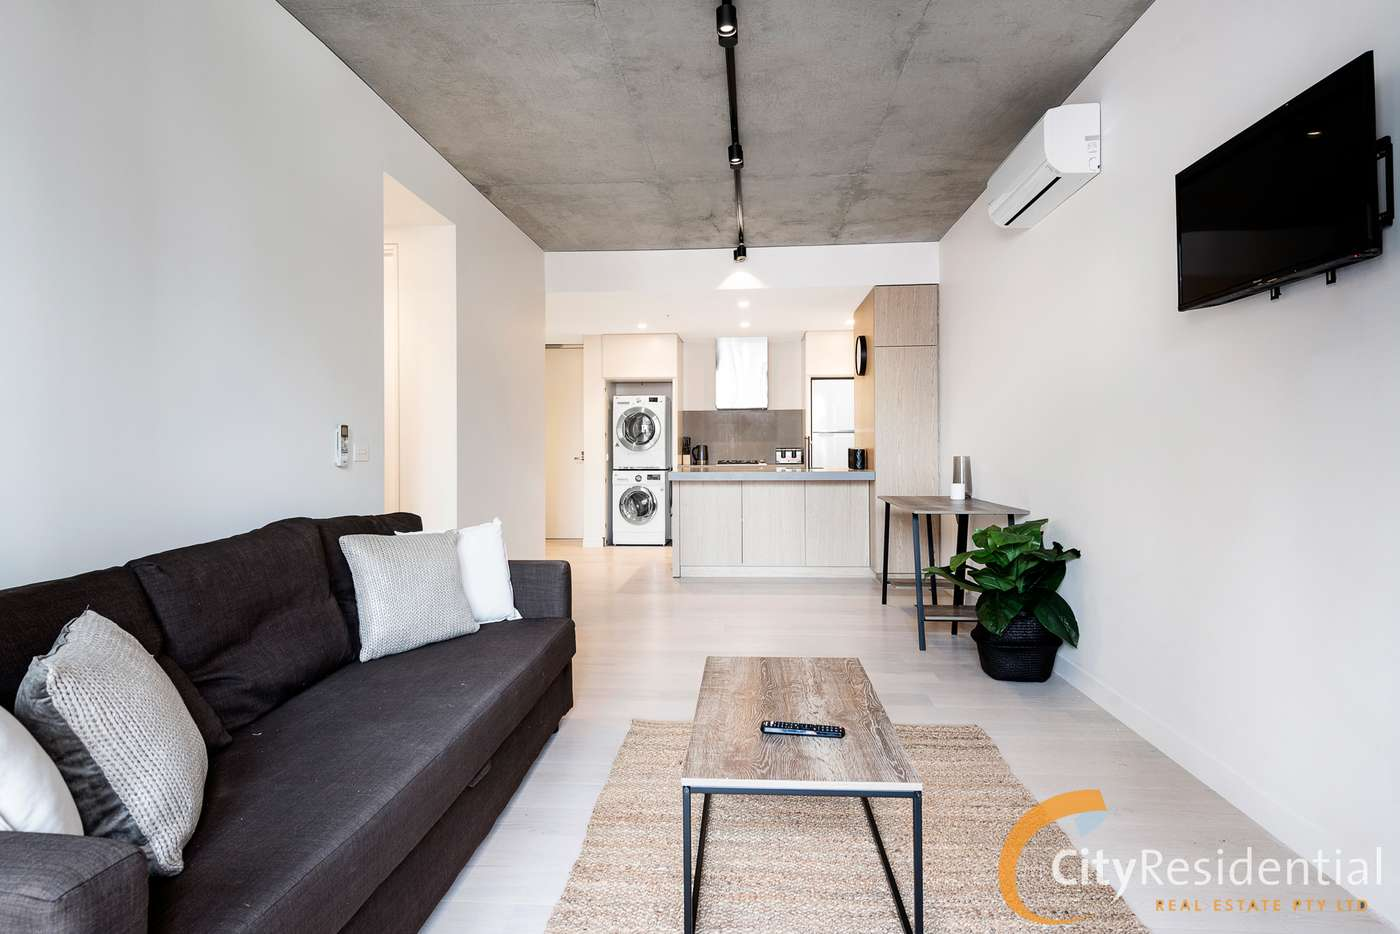 Main view of Homely apartment listing, 5/380 Queensberry Street, North Melbourne VIC 3051